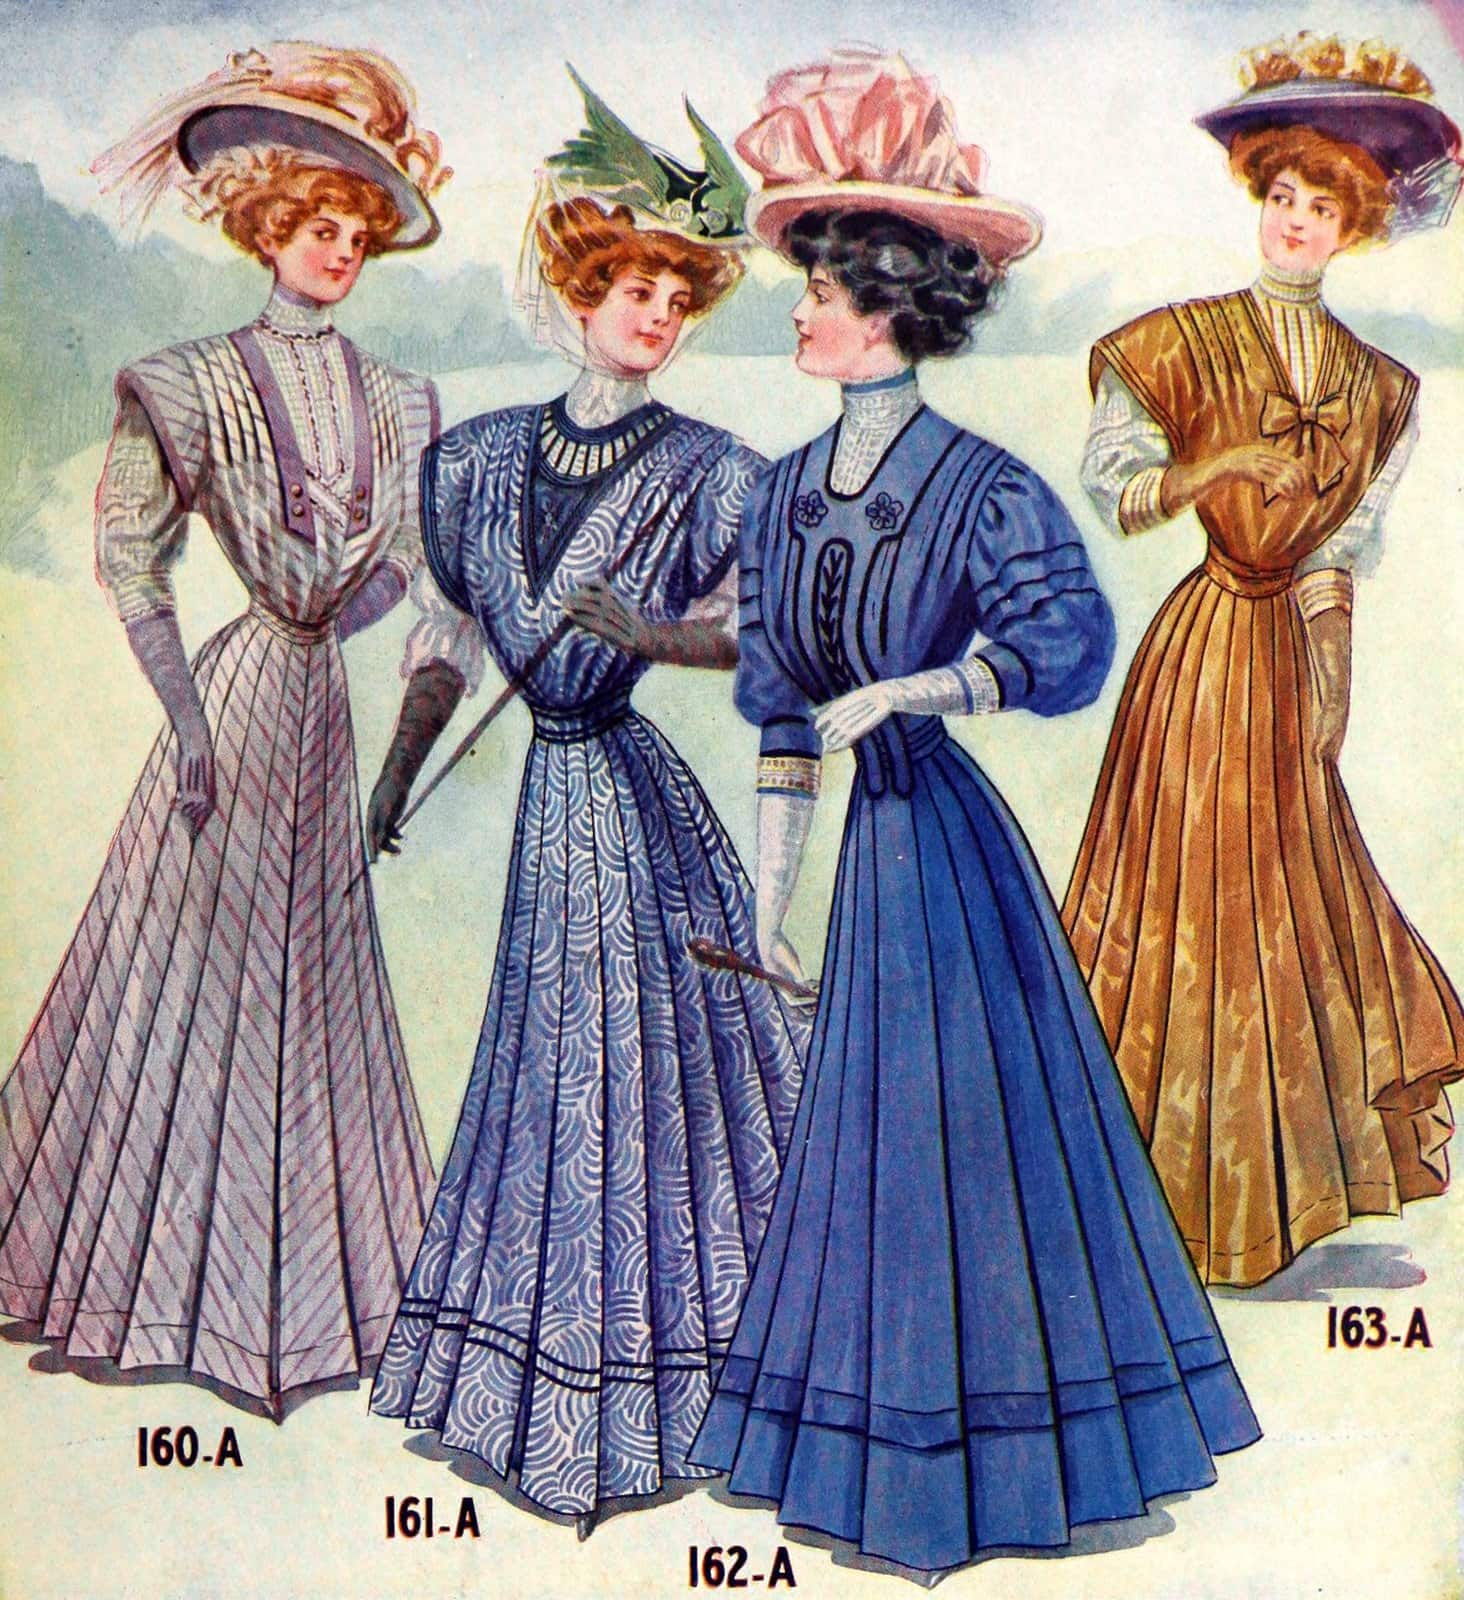 Macy's vintage clothing for women in 1908